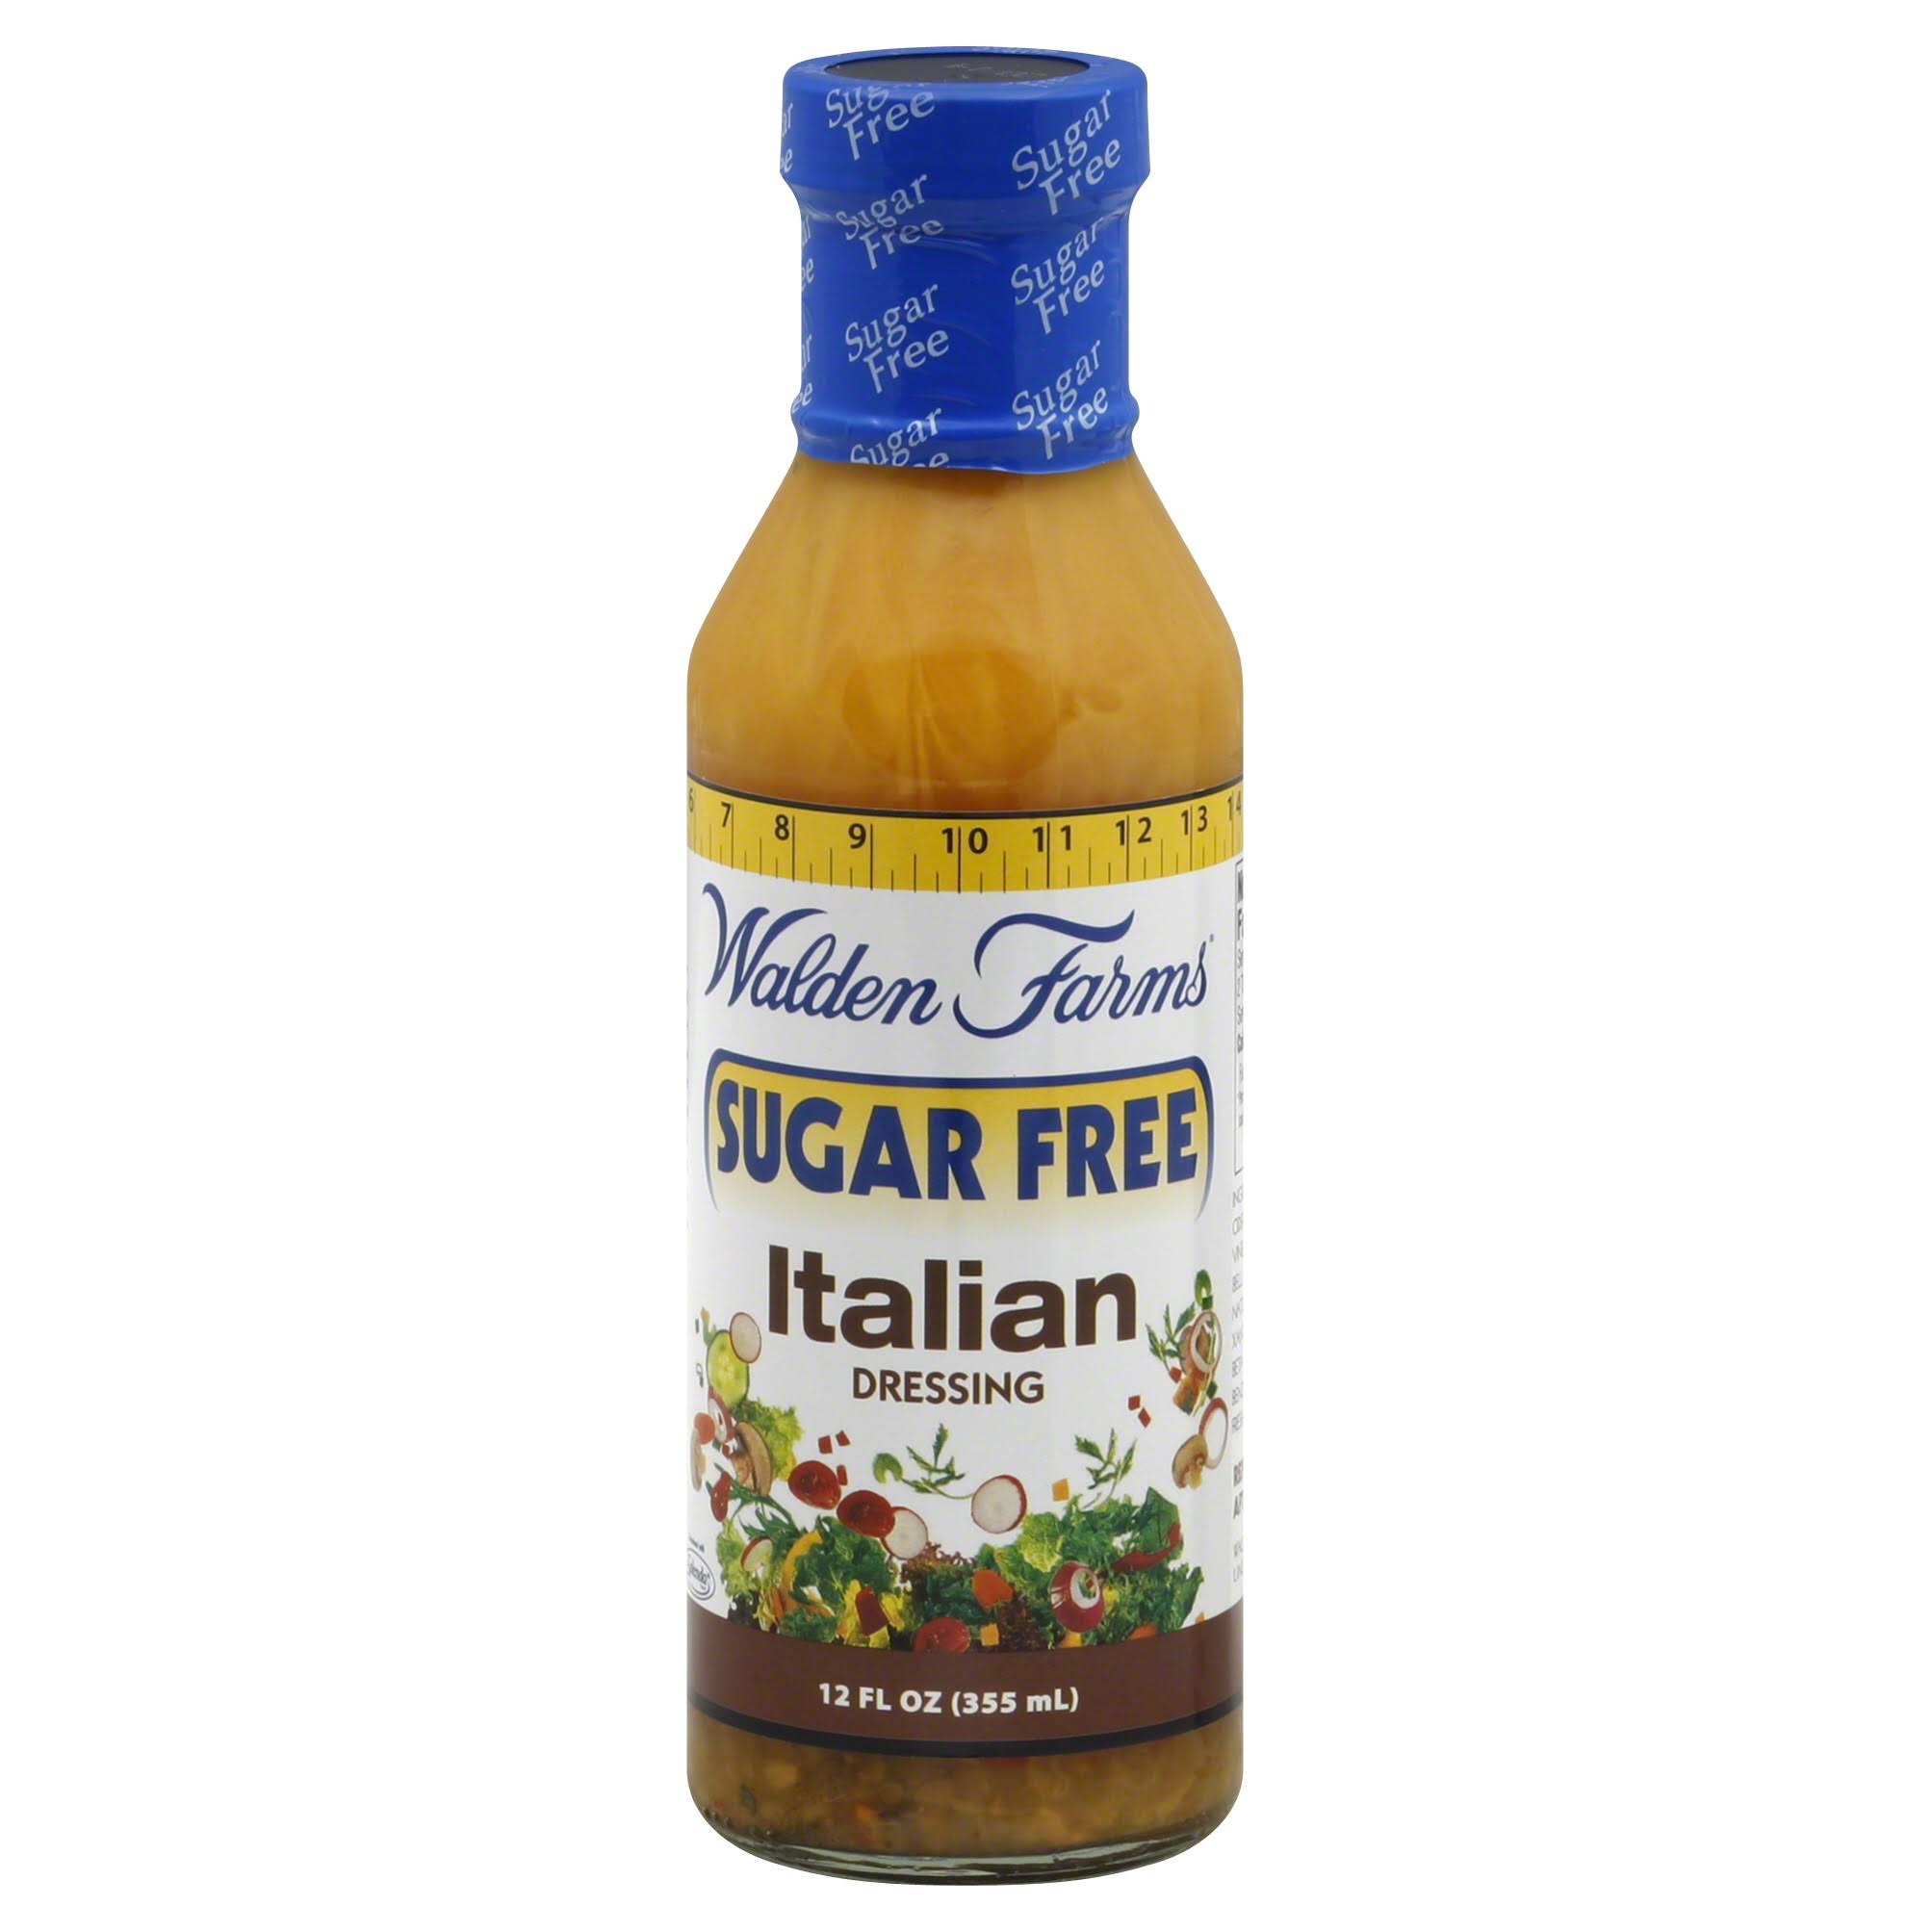 Walden Farms Sugar Free Italian Dressing - 12oz